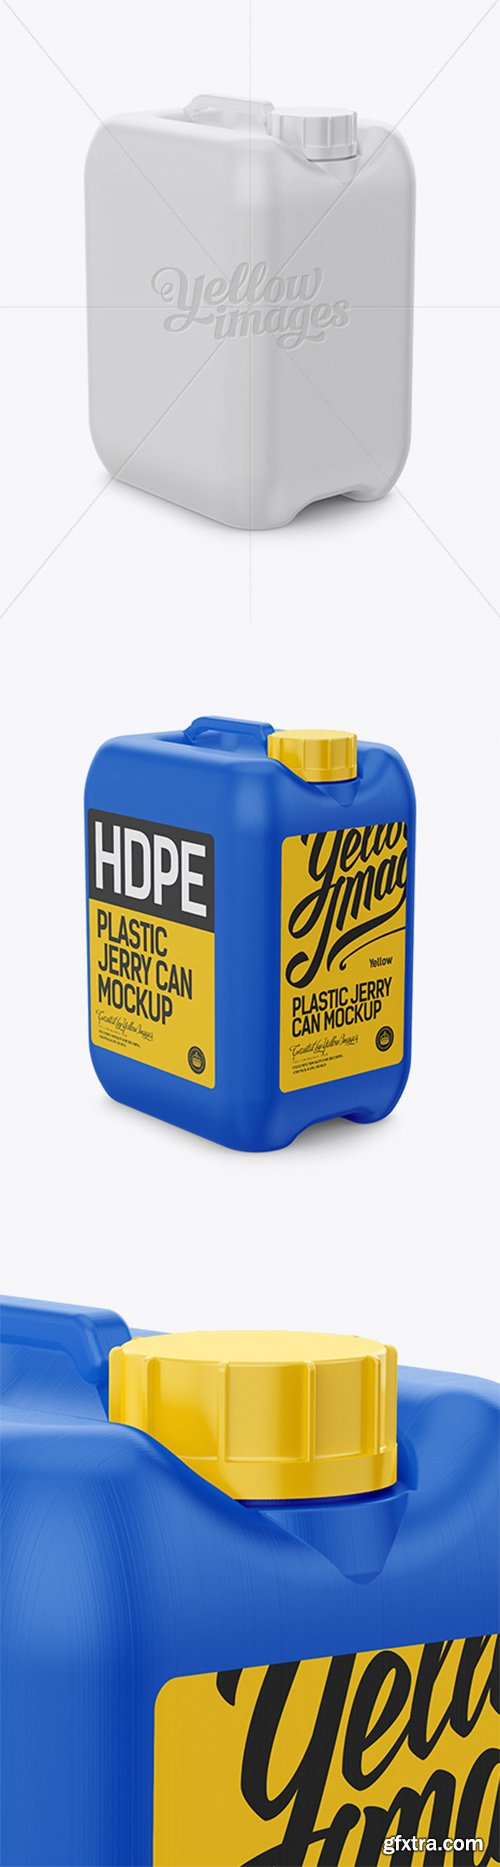 10L HDPE Jerry Can Mockup - Halfside View (High-Angle Shot) 13838